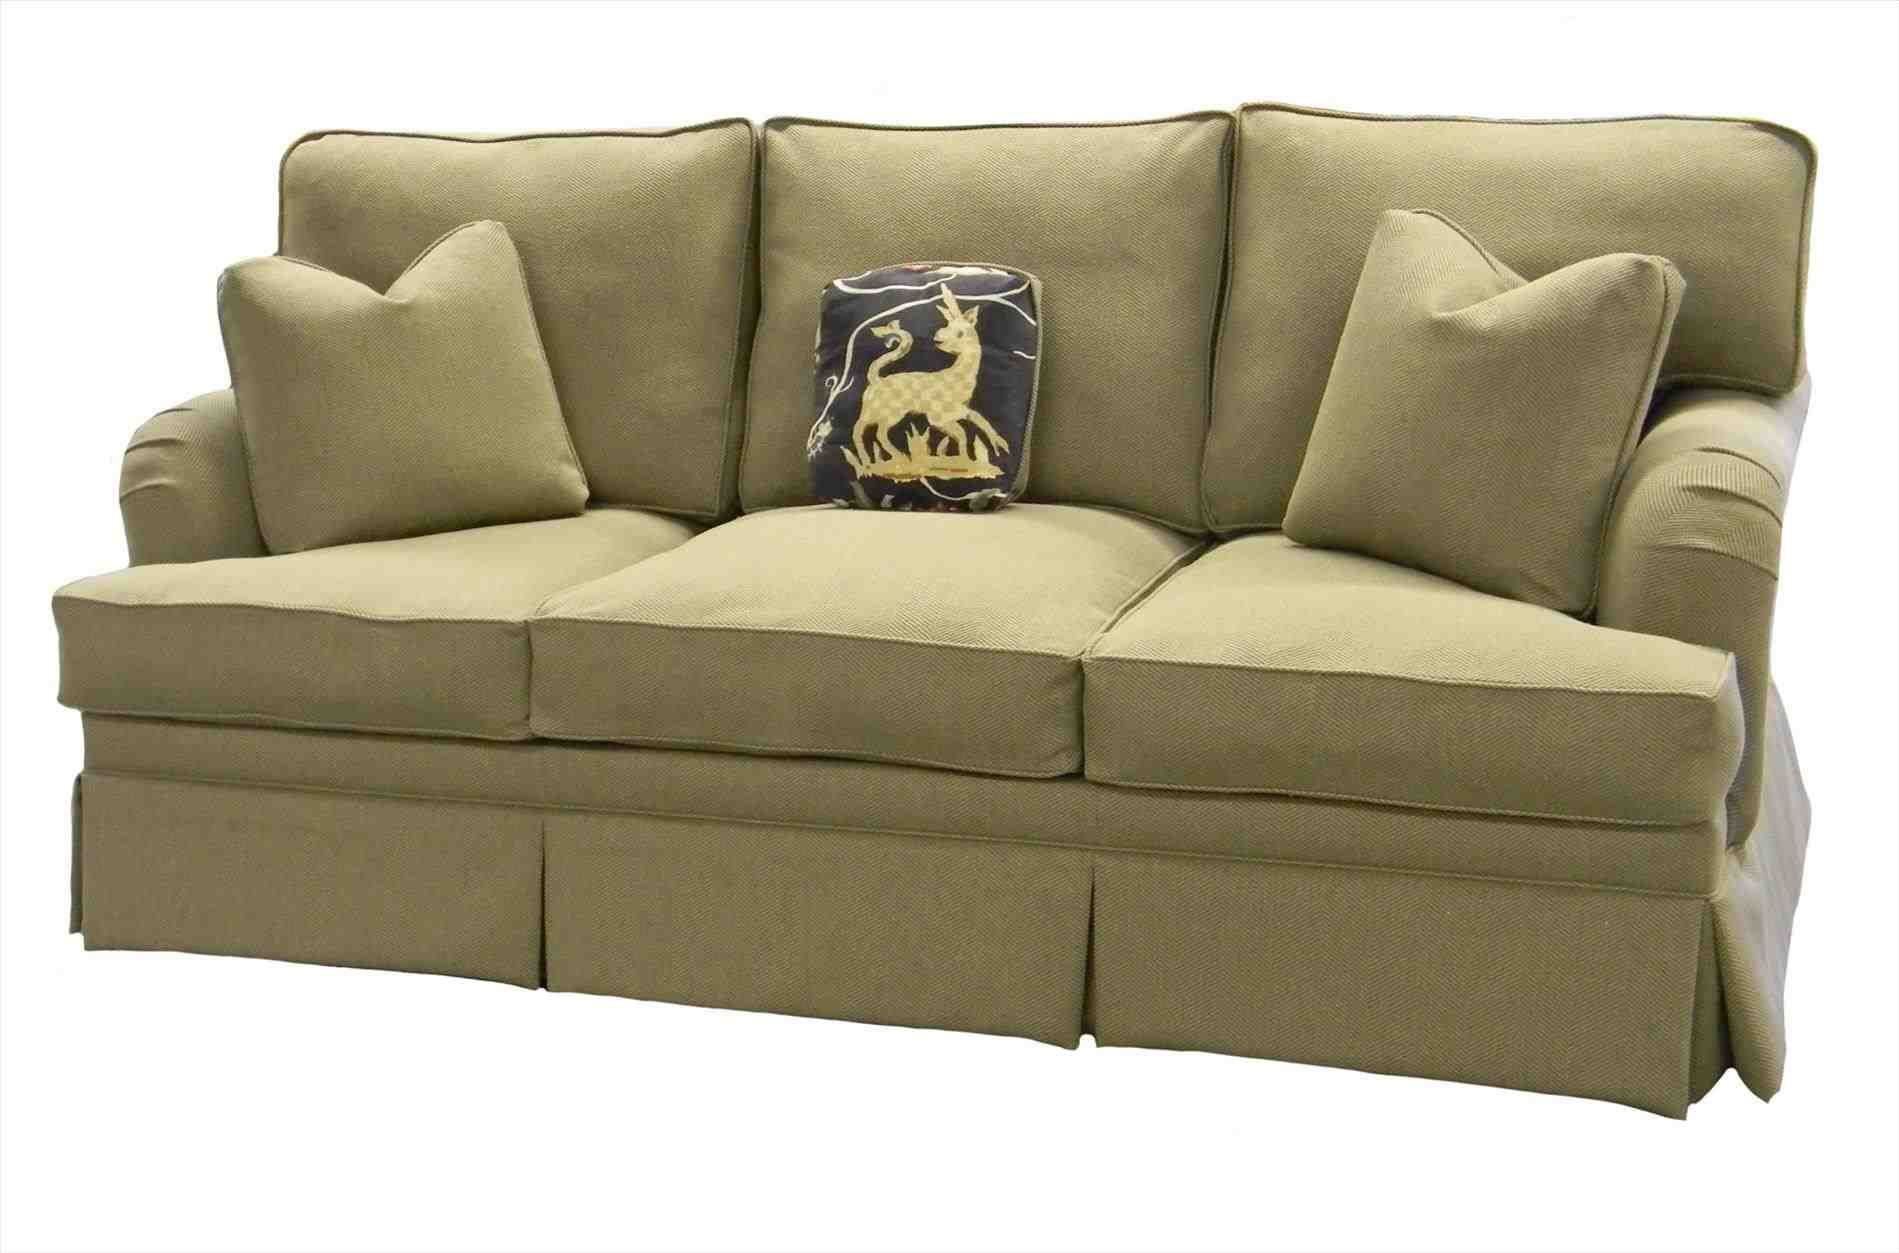 home sectional turn chair breathtaking twin ideas best small that bed comfortable beds sofa furniture into half for a leather couches and interesting sleeper hideabed faux